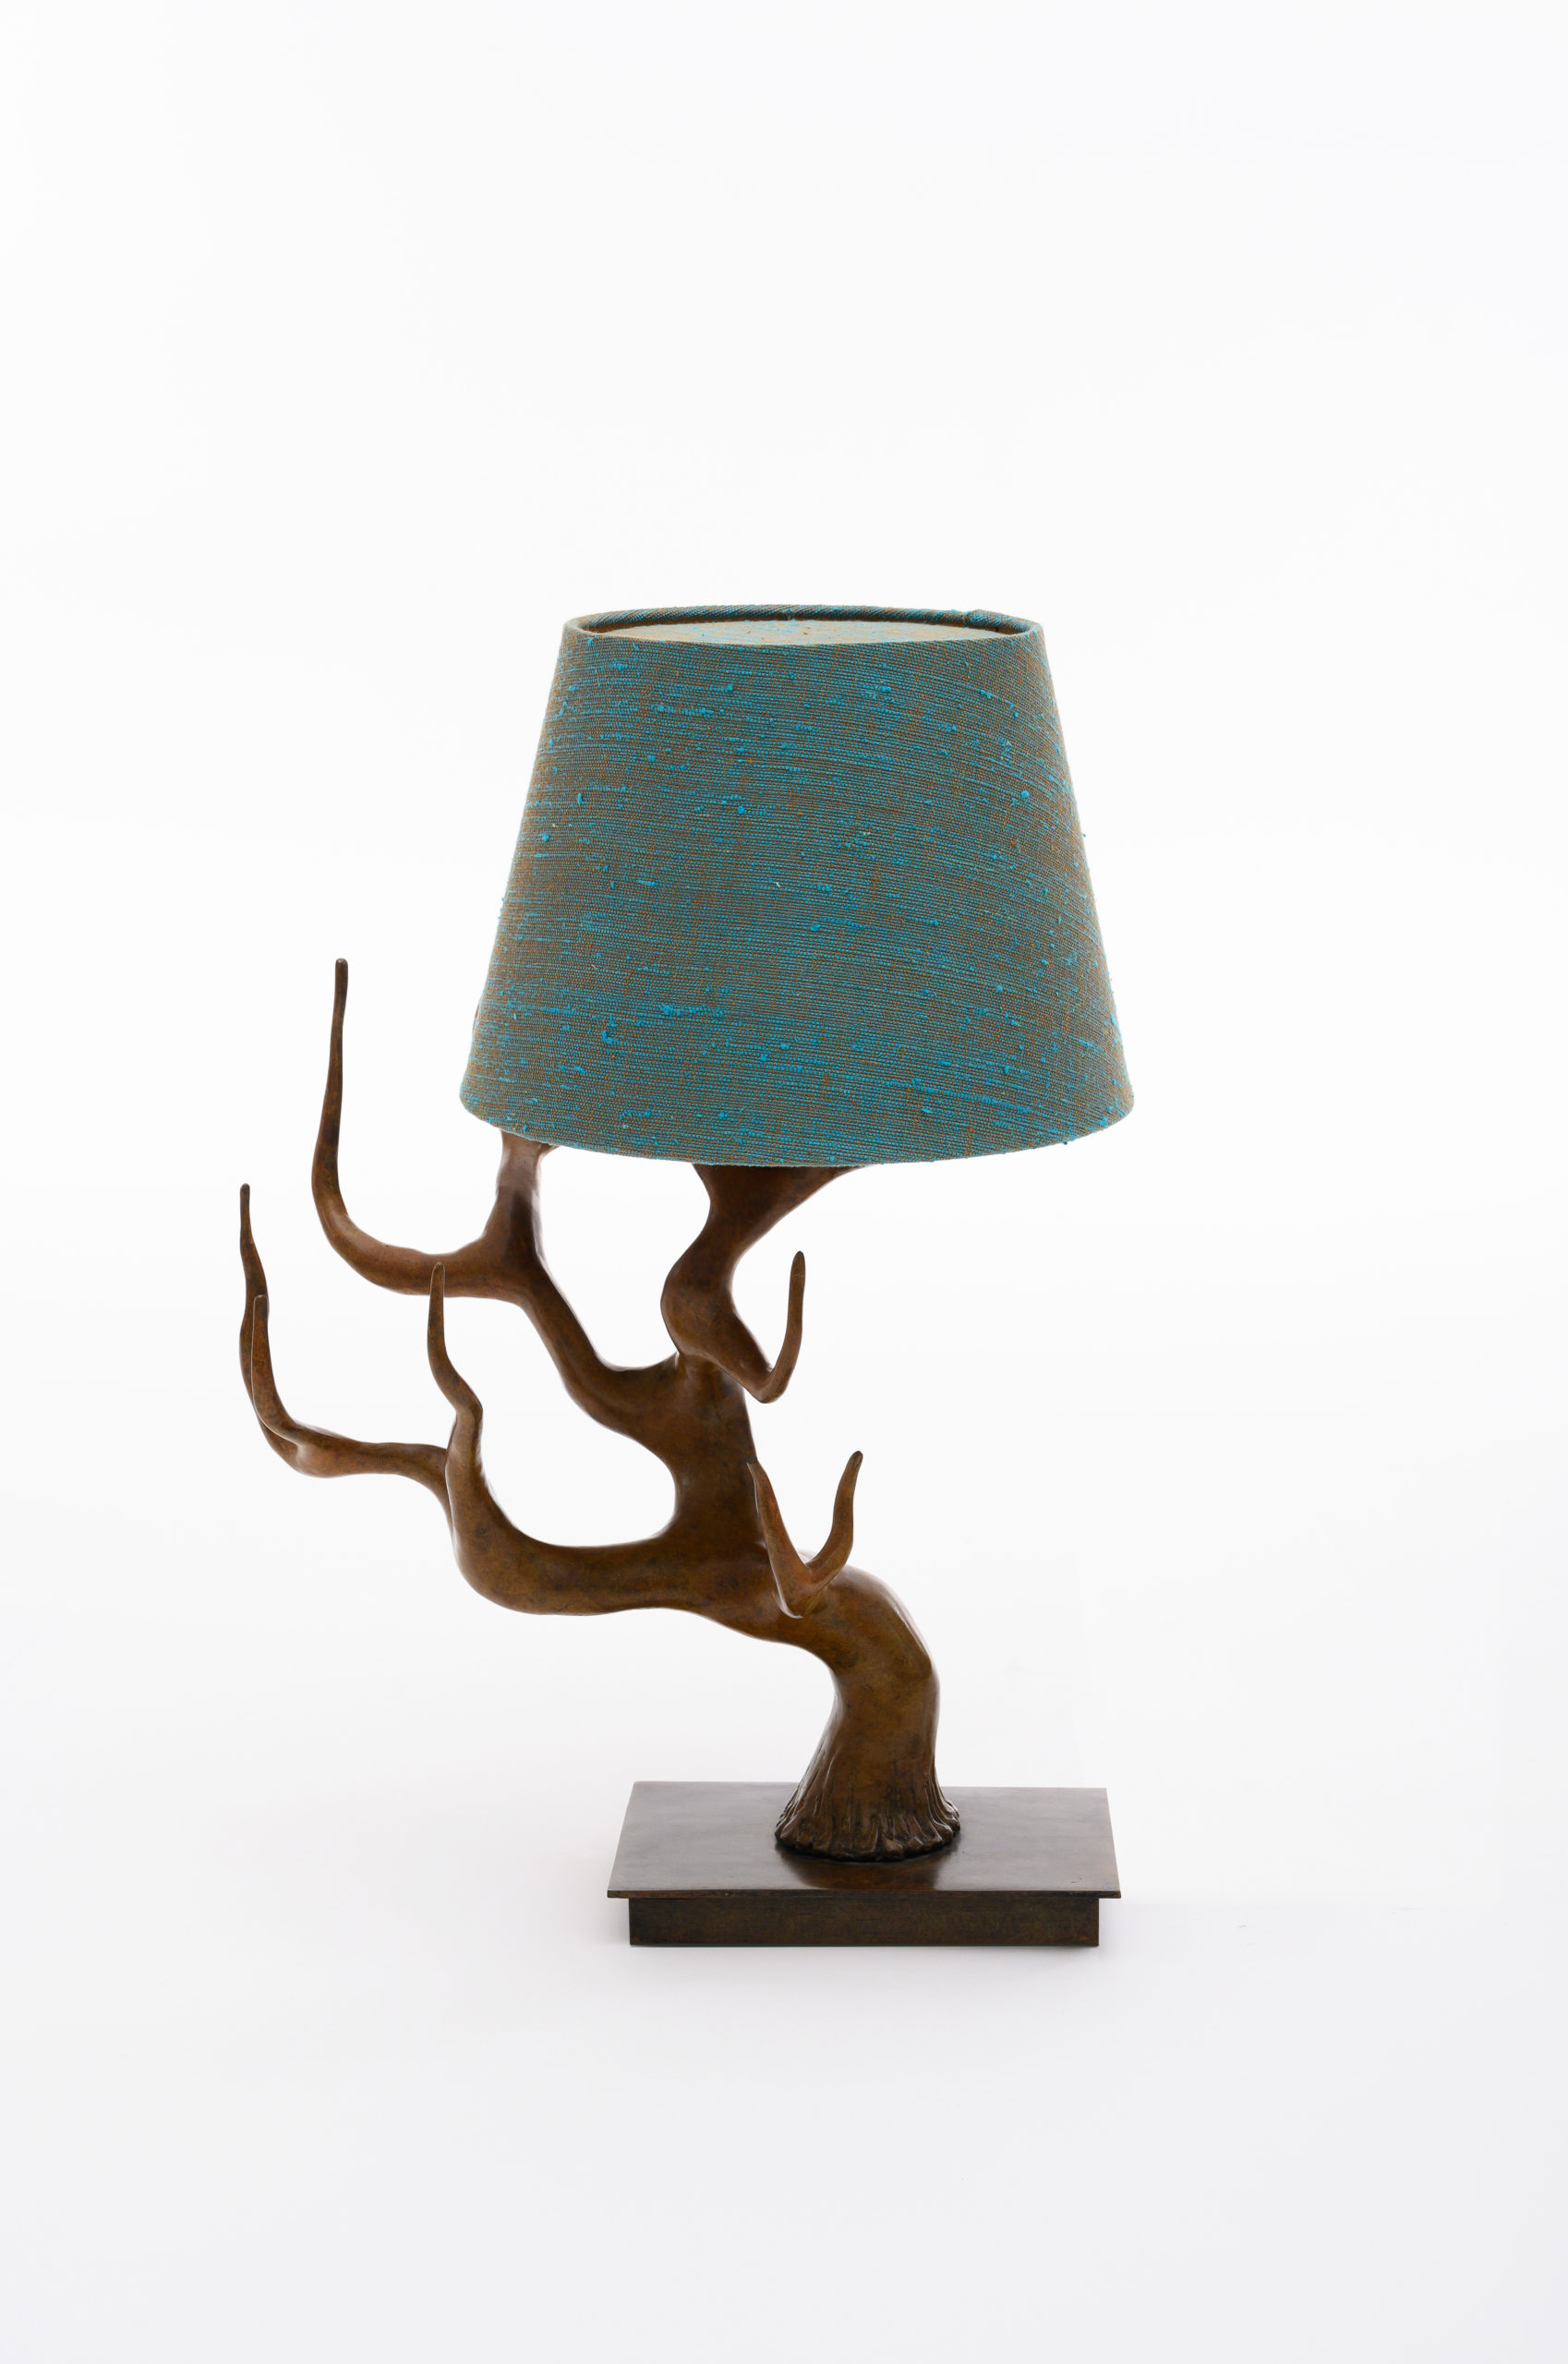 NYDC_WNWN_products_david_sutherland_elan_atelier_Cervus_Table_Lamp_PHS_0399